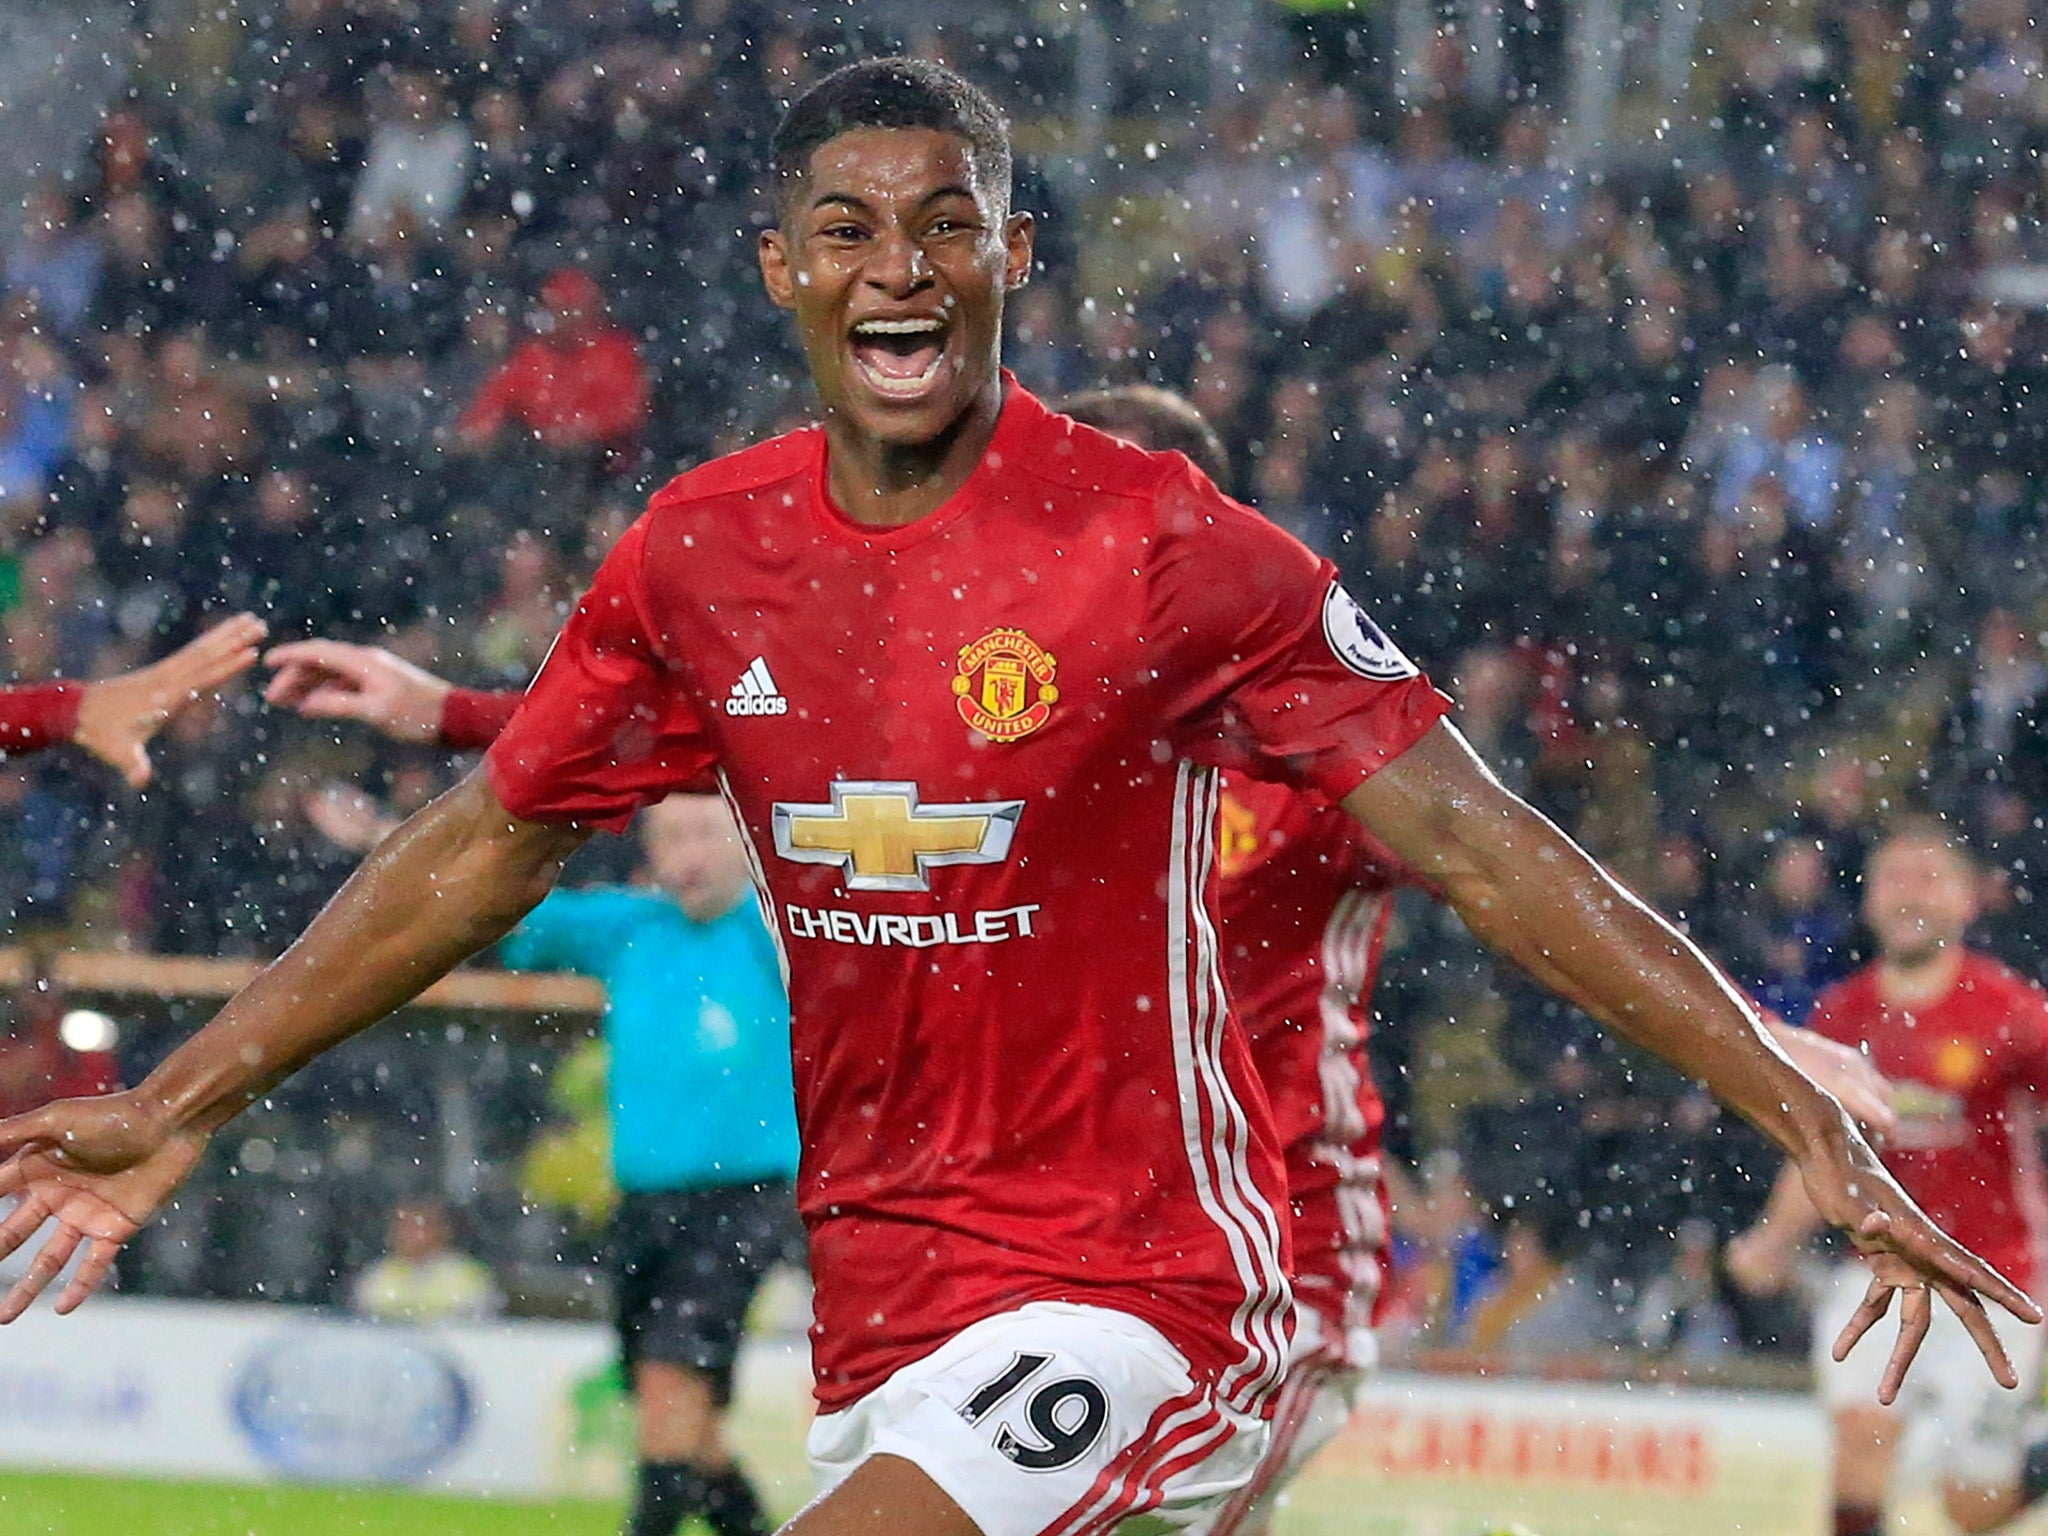 Will anthony martial return for manchester united against hull city manchester evening news - Manchester United Vs Manchester City Marcus Rashford Set To Miss Out Despite Hat Trick For England Under 21s The Independent